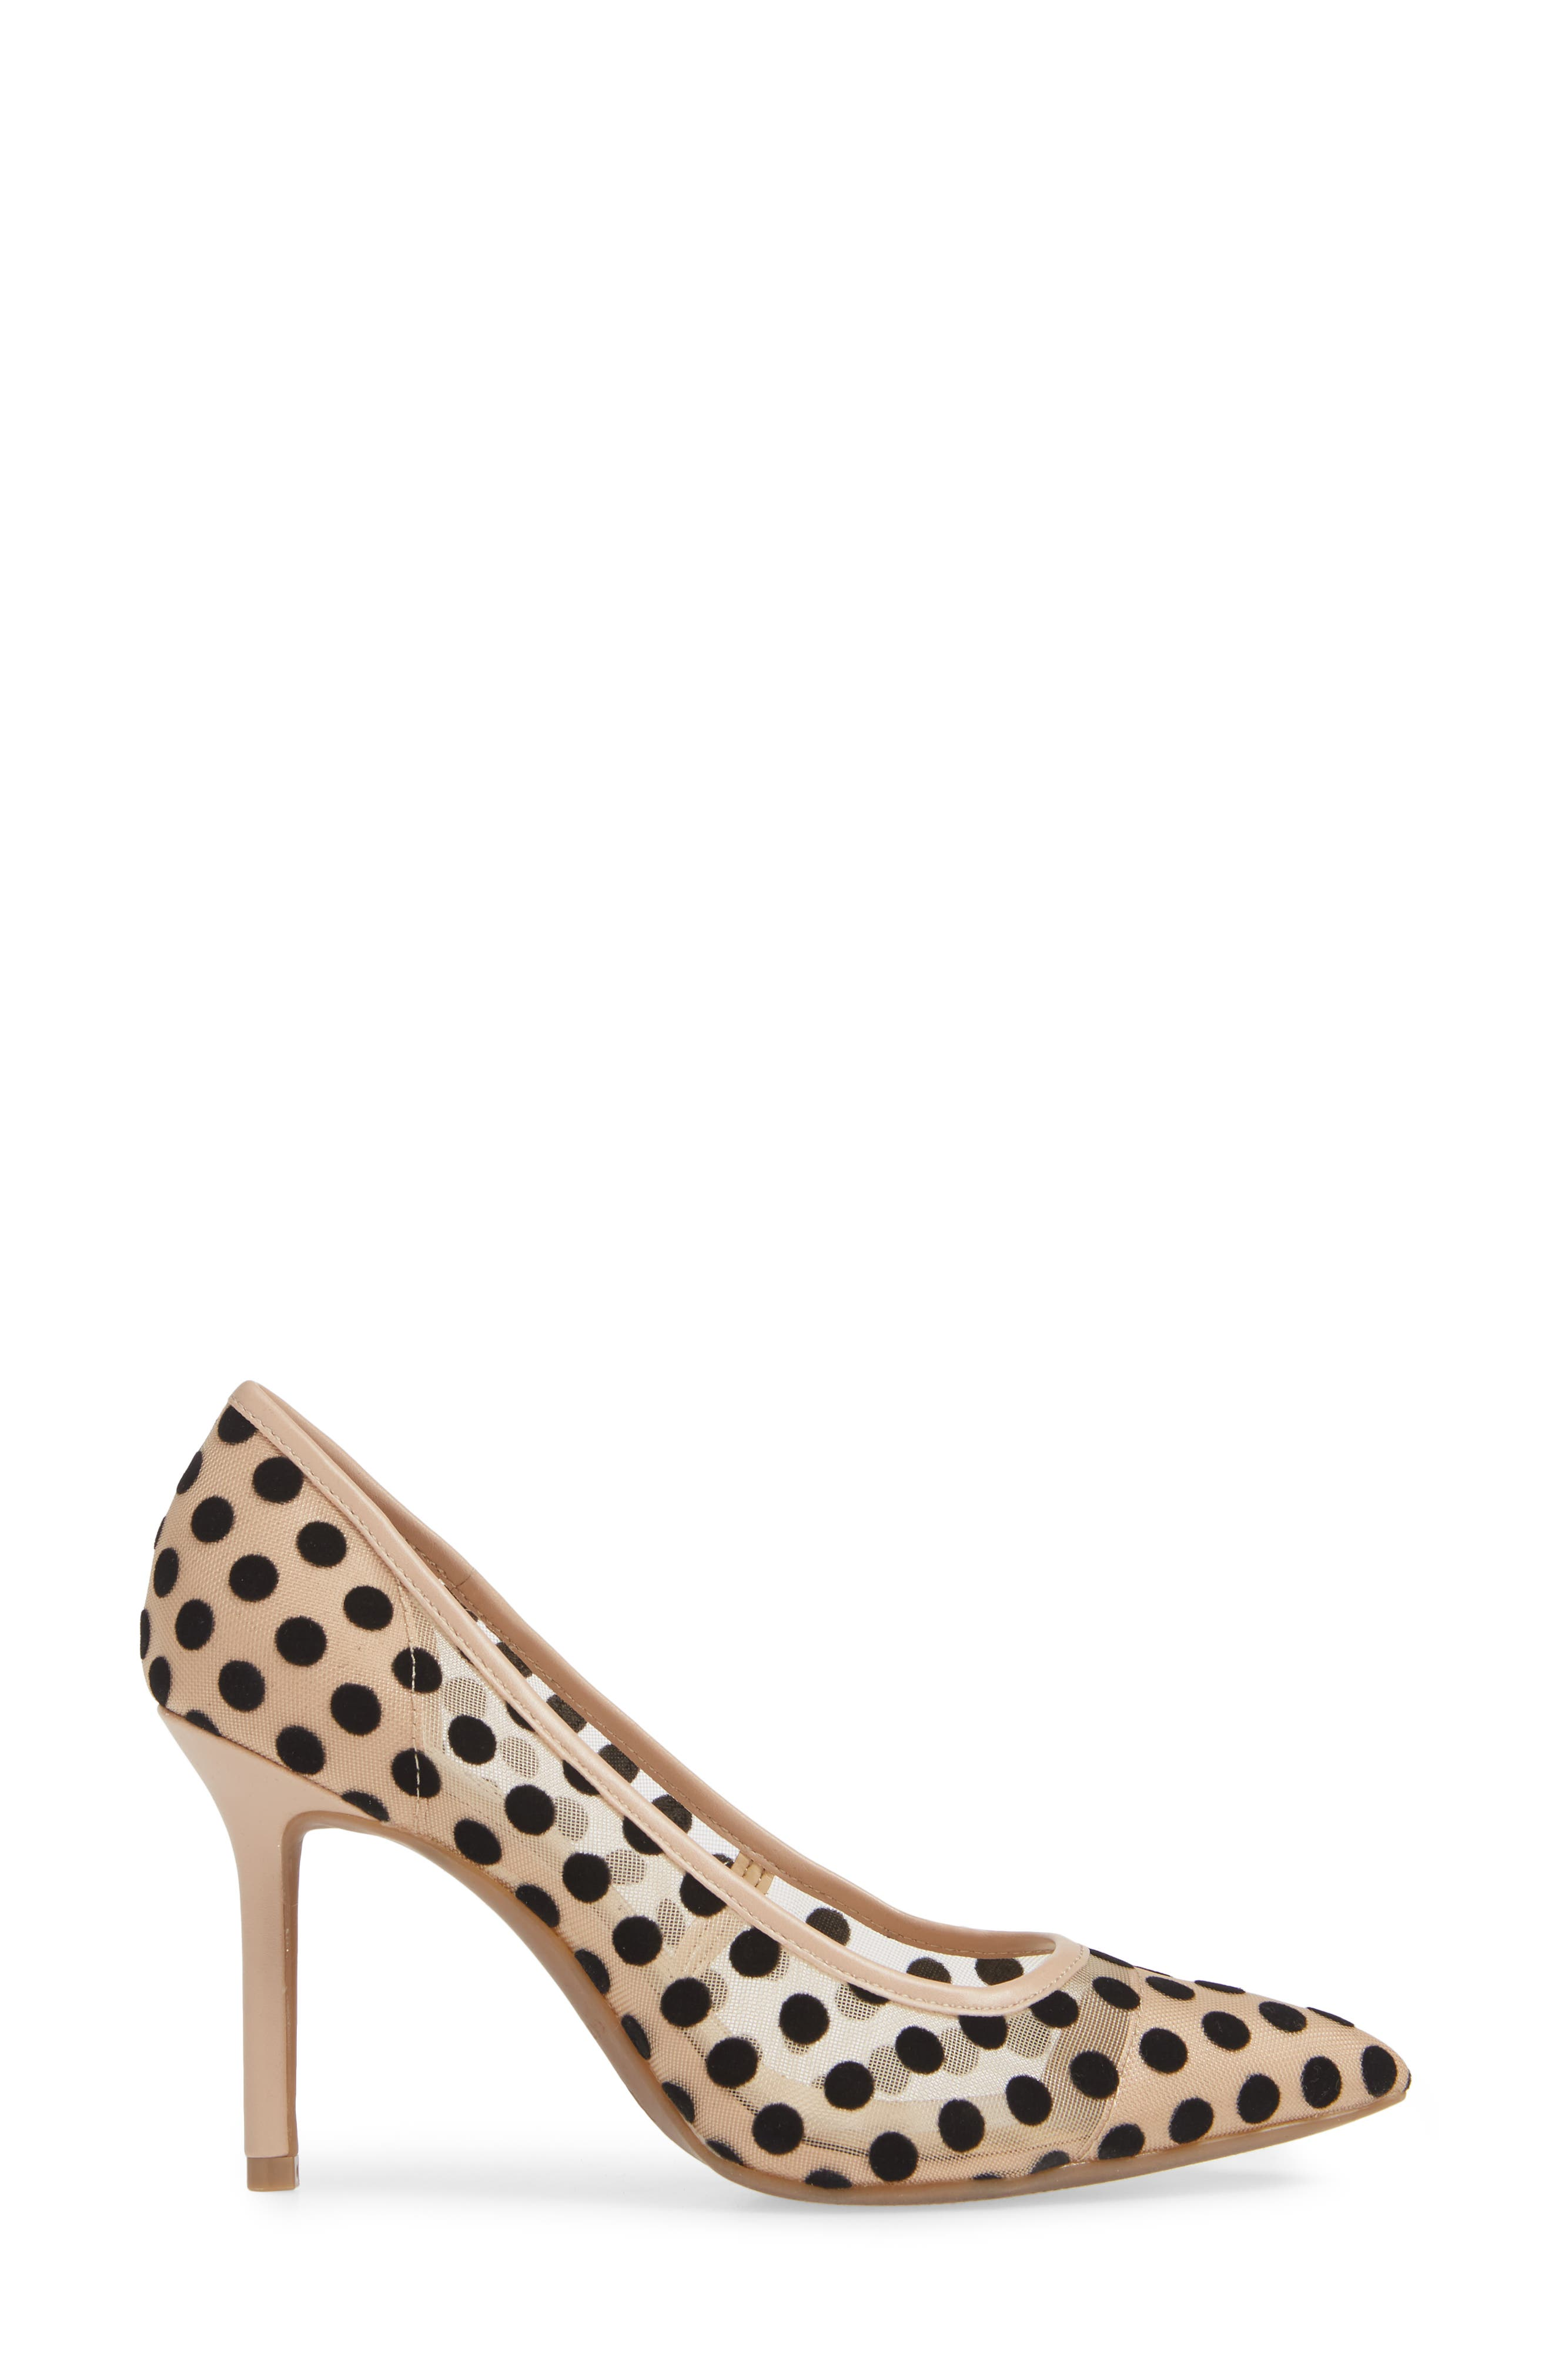 KATY PERRY, Pointy Toe Pump, Alternate thumbnail 3, color, 270